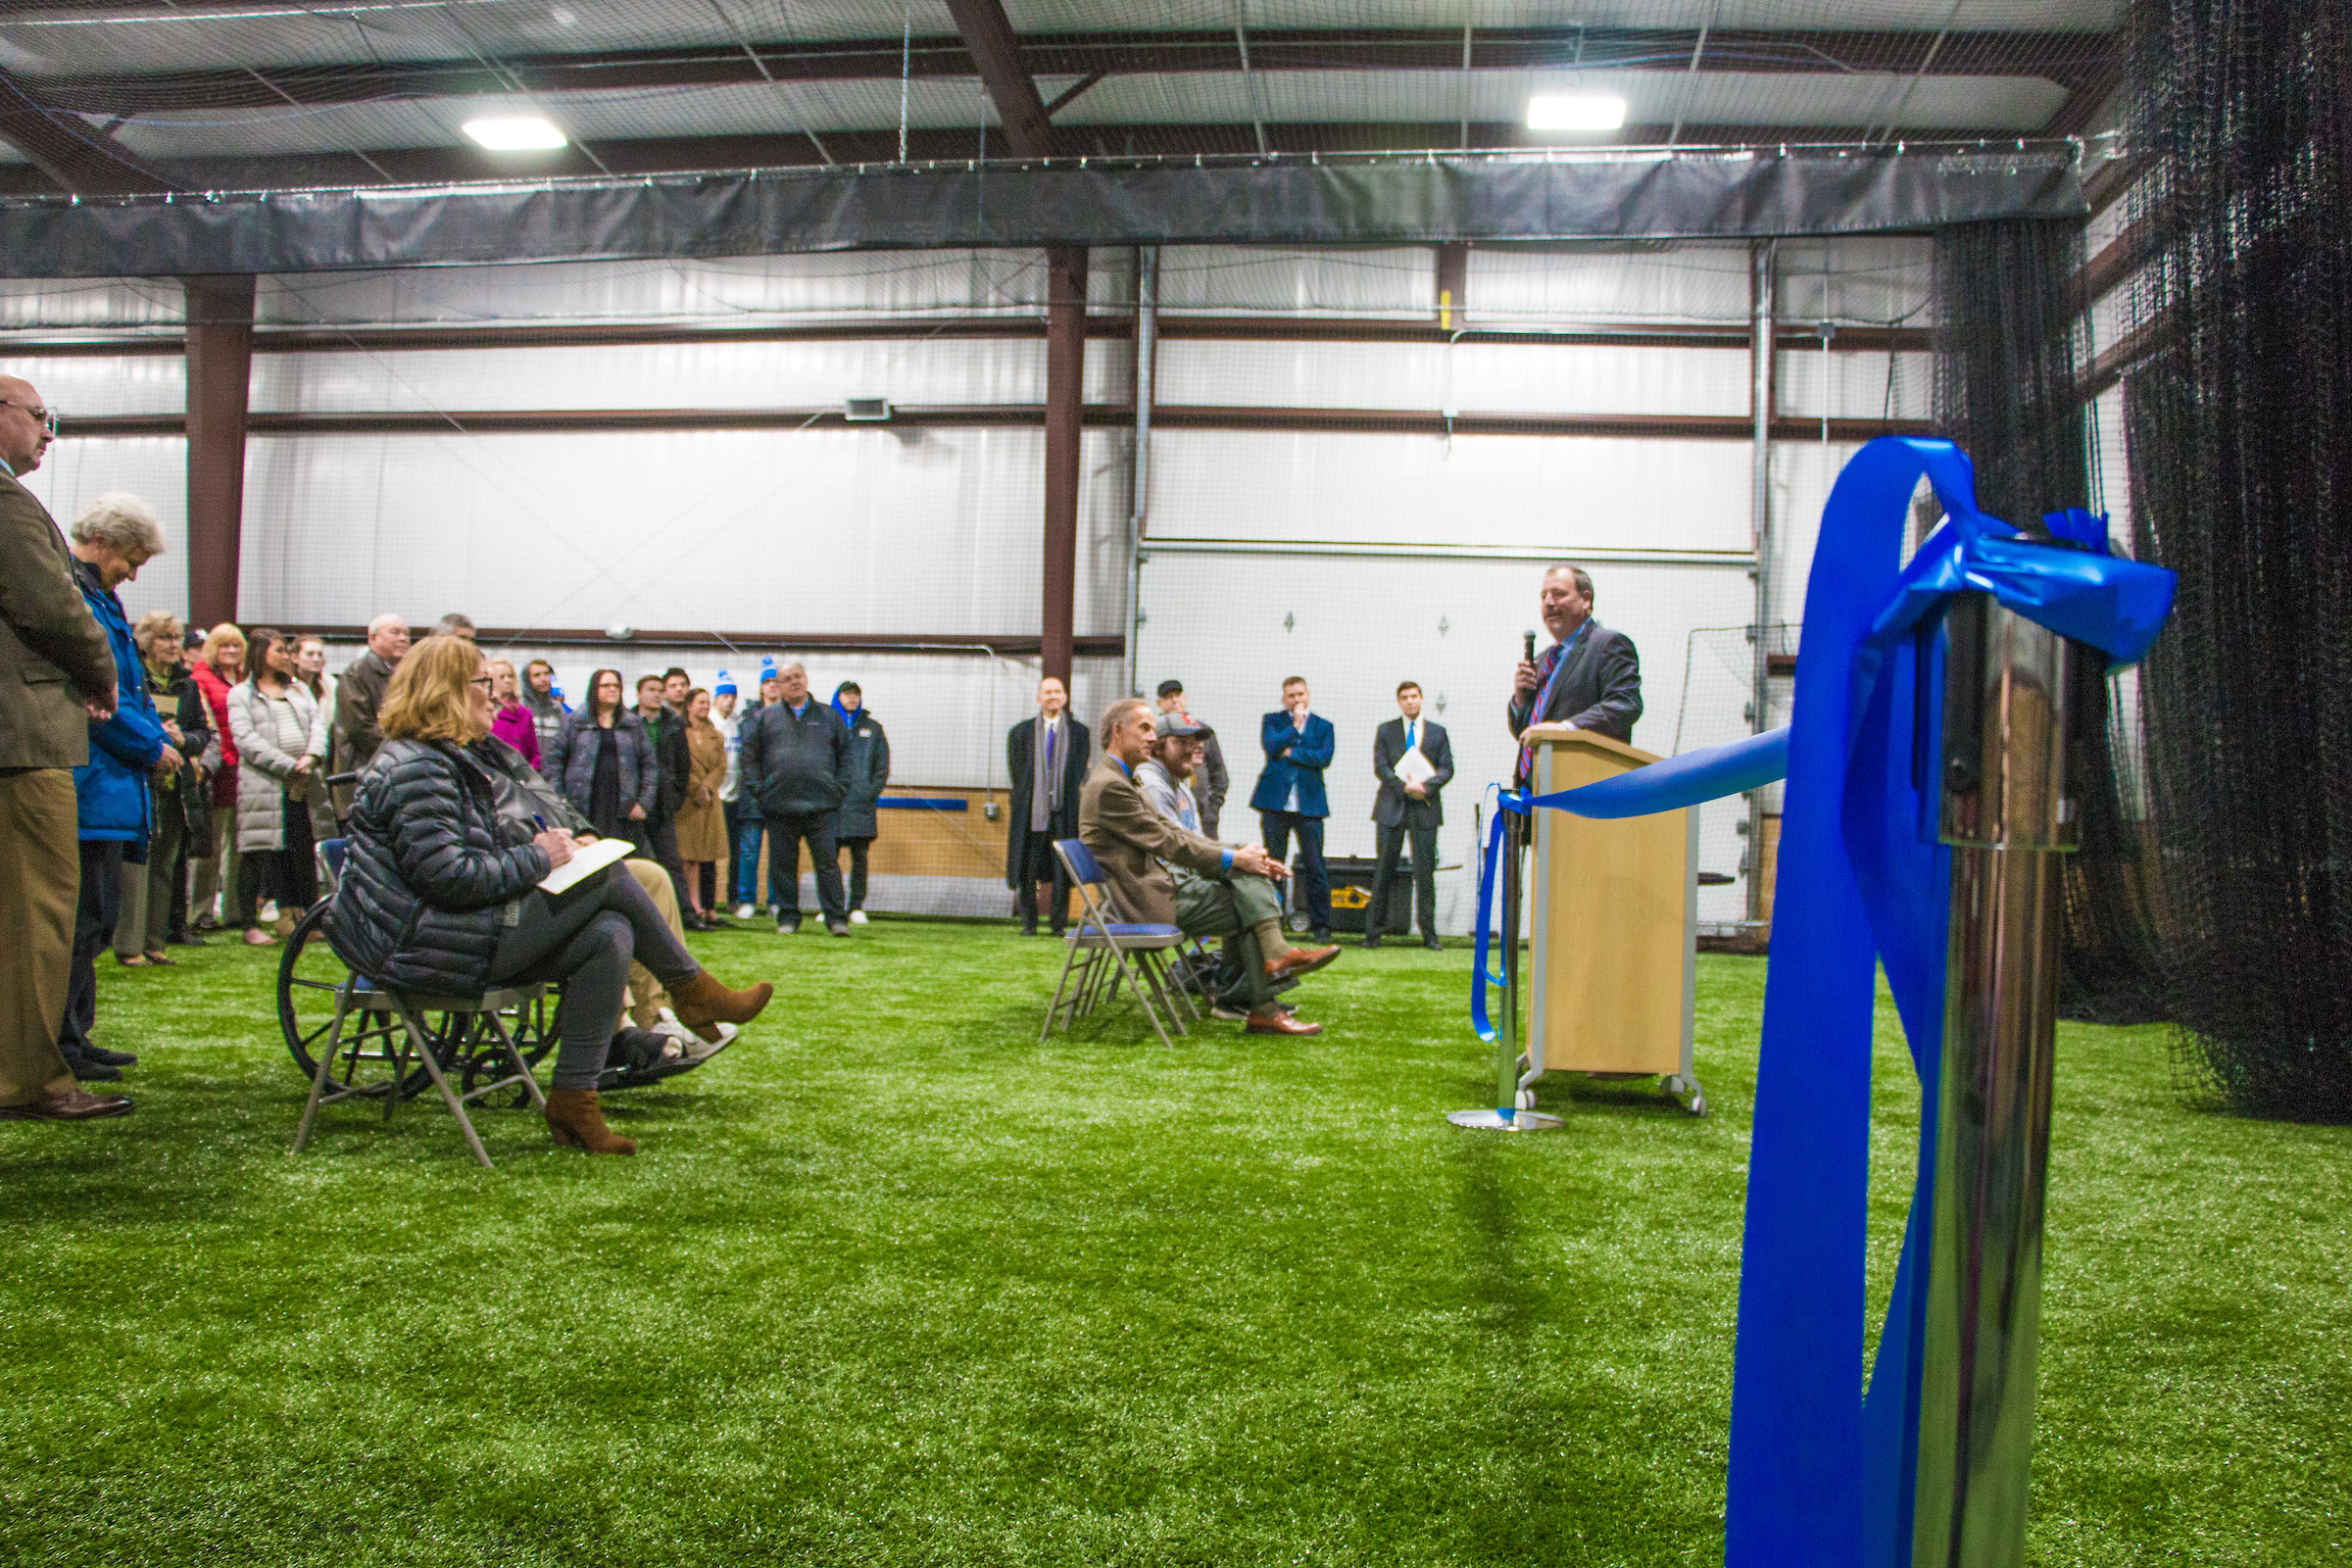 CUW Athletic Director Robert Barnhill addresses those who gathered for the Catalyst Sports Training Center open house.